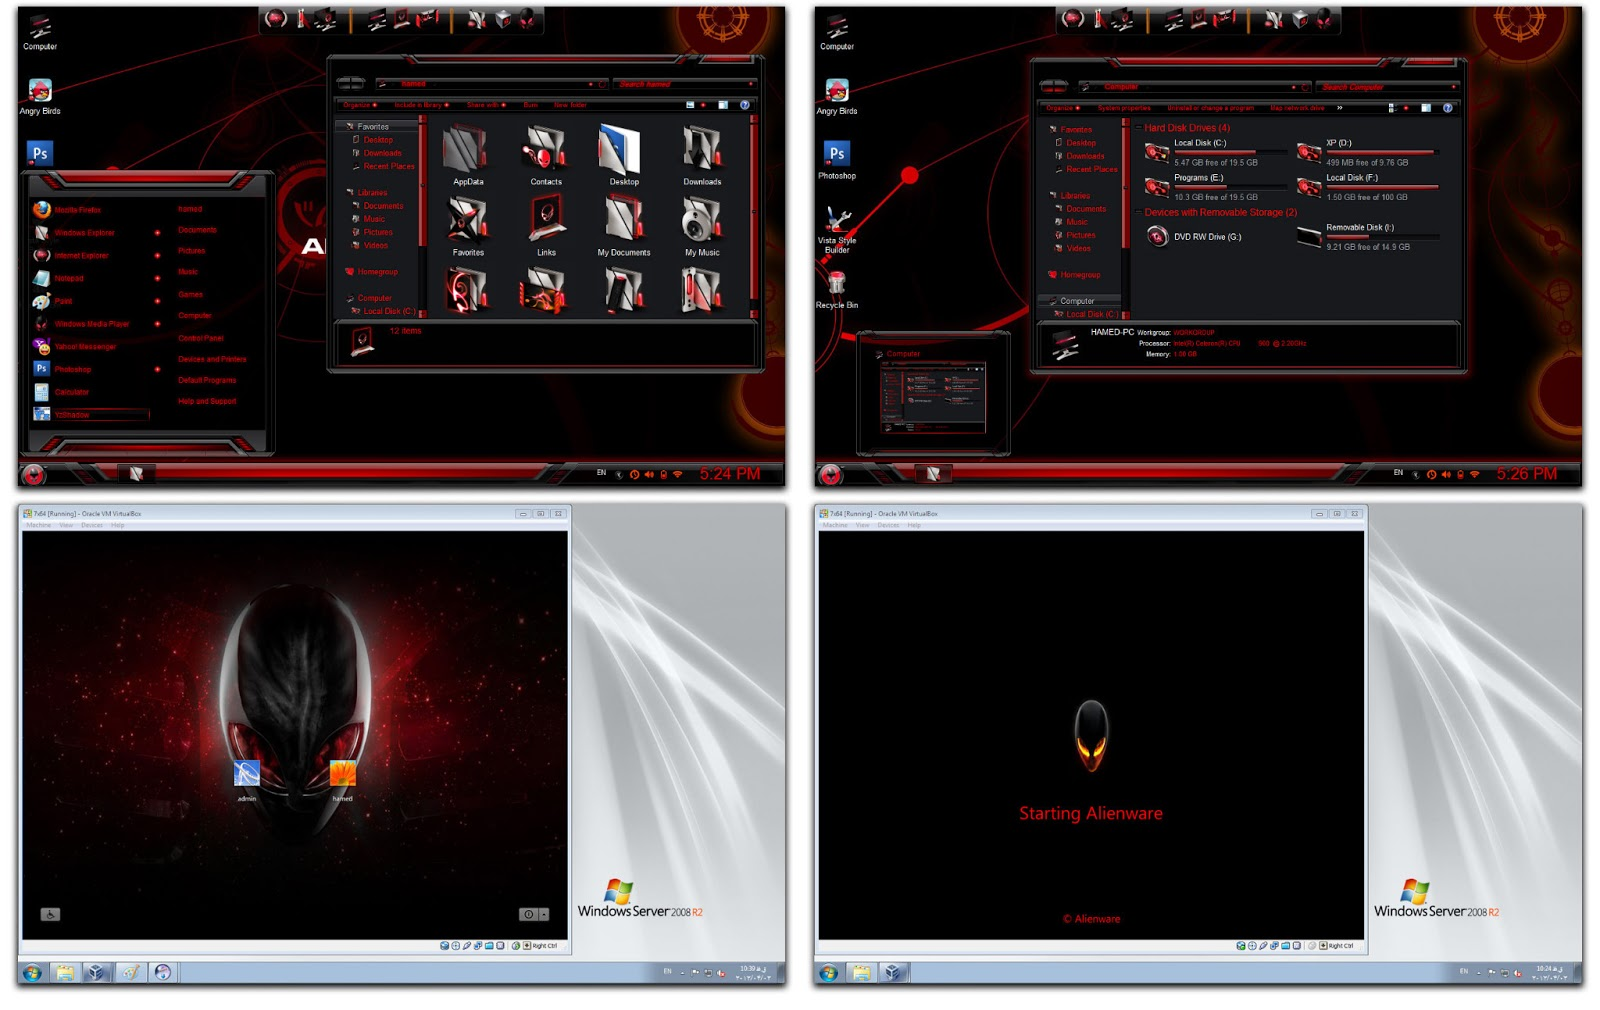 Red+Alienware+Skin+Pack+For+Windows+7.jpg